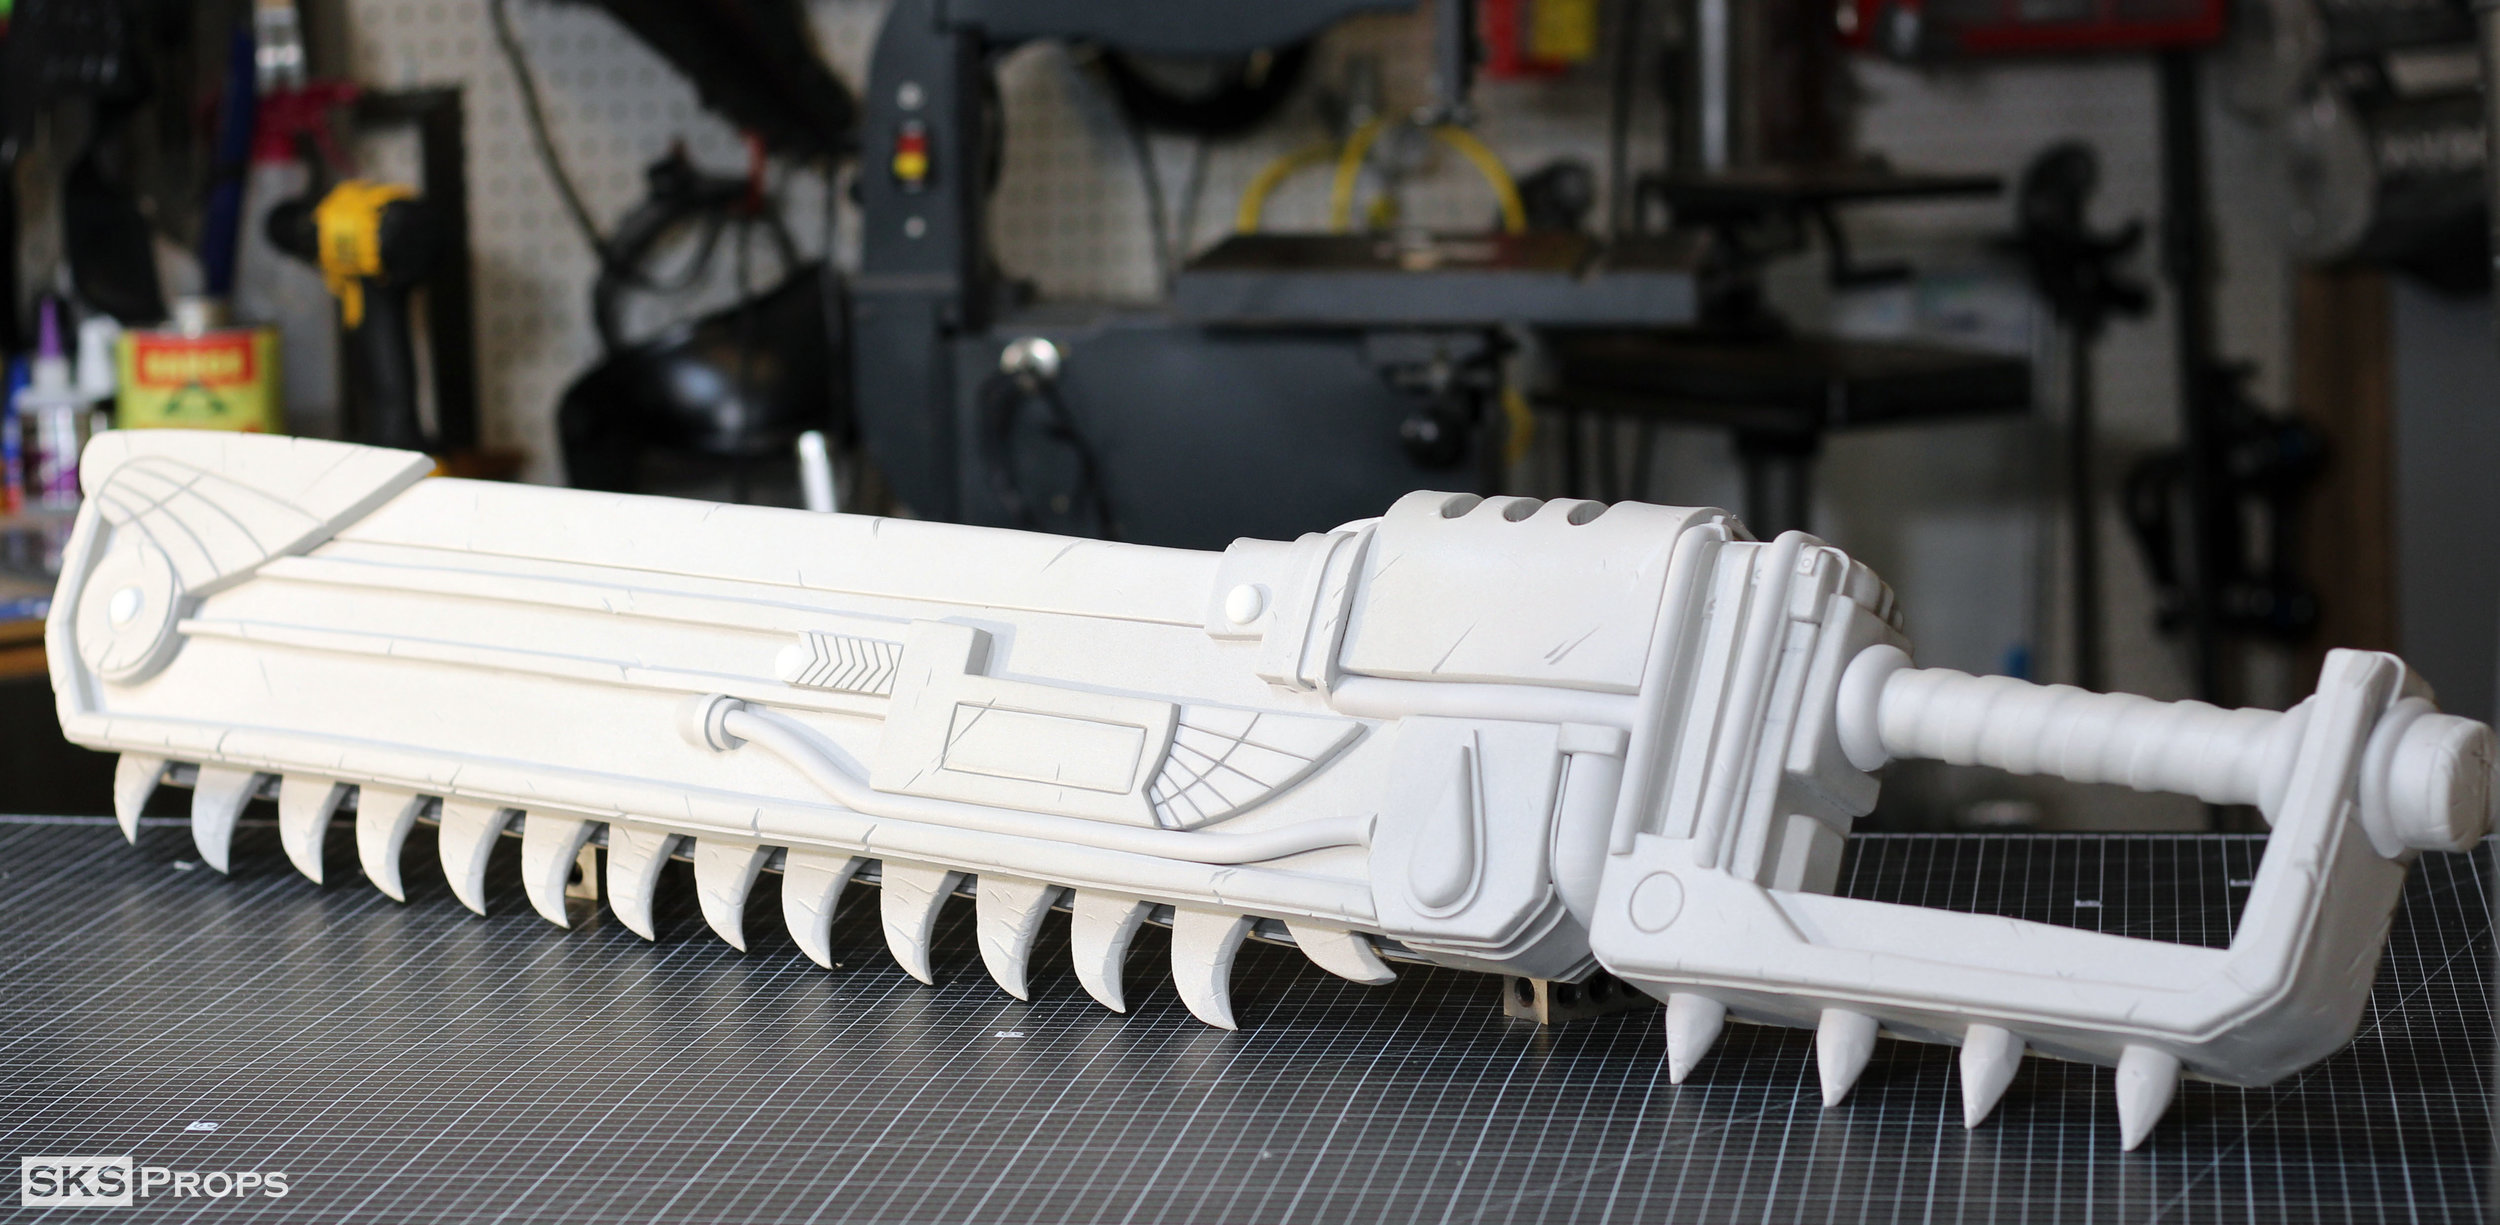 Warhammer 40K Chainsword made using 2,6,10mm HD-Foam as well as HD-Foam Dowels and Half Rounds.